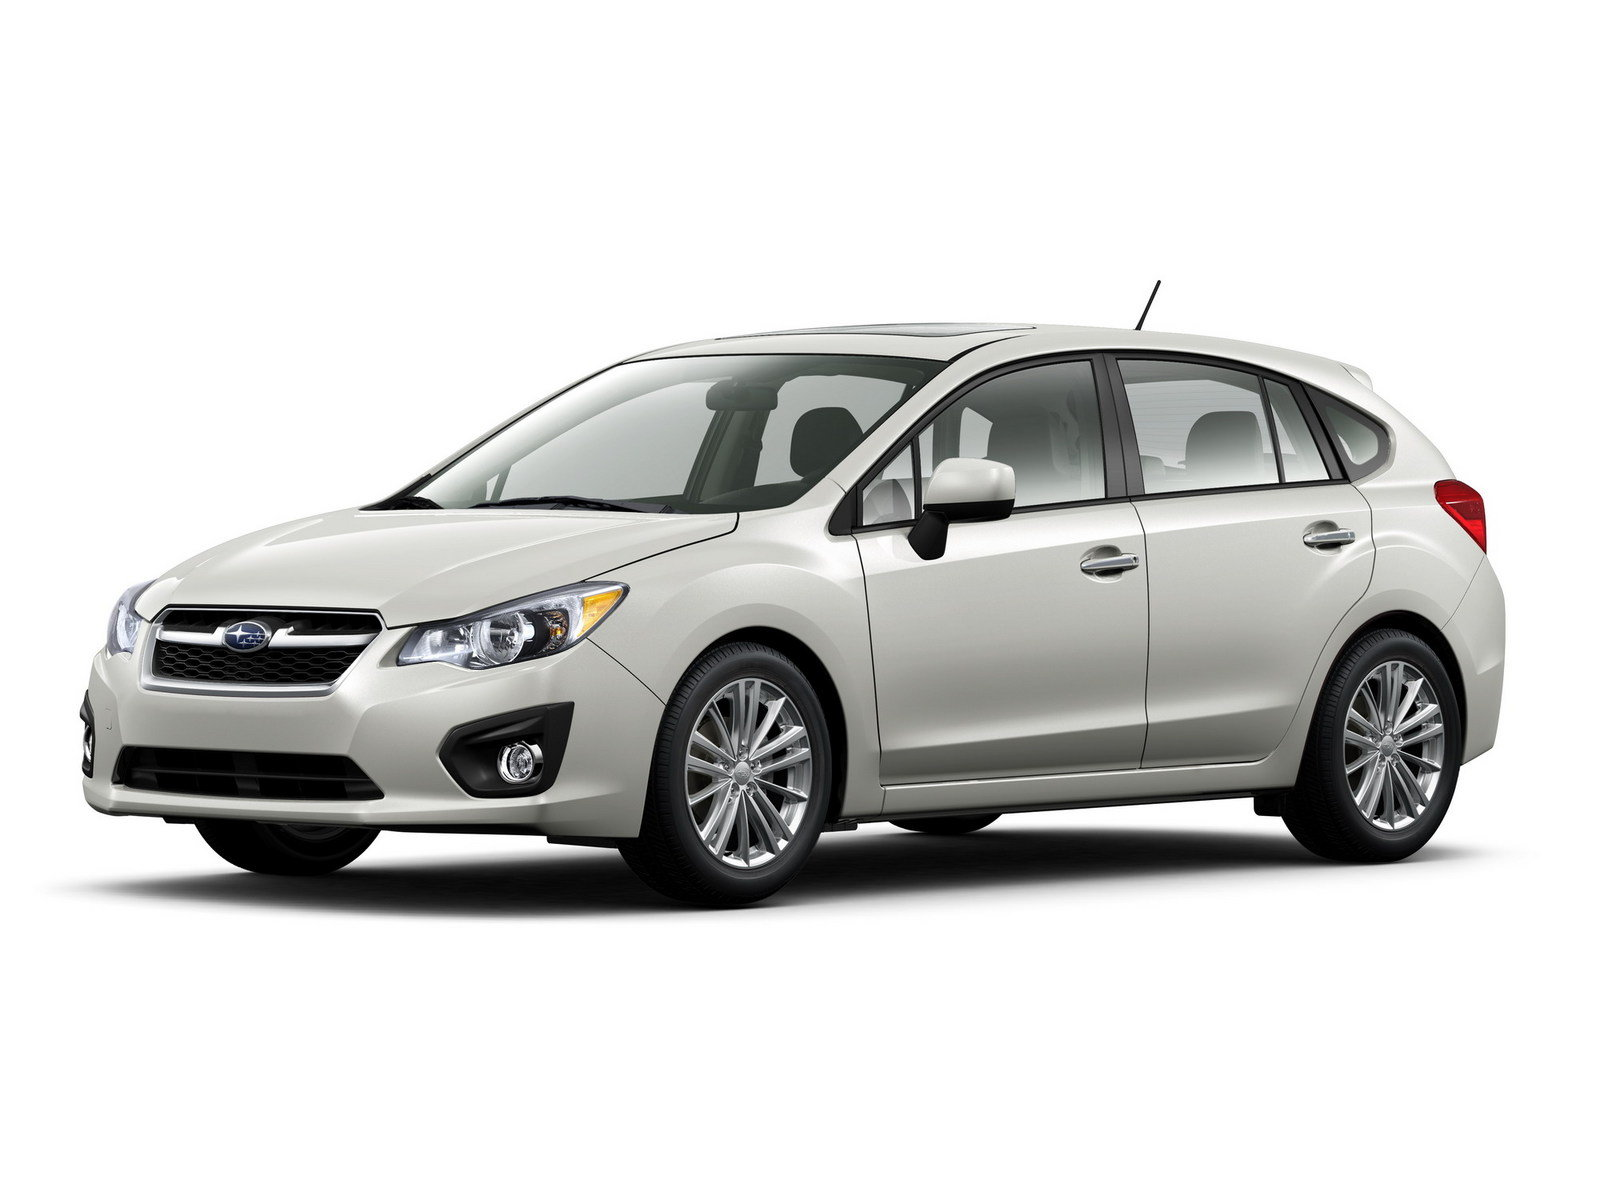 2012 - 2014 subaru impreza review - top speed